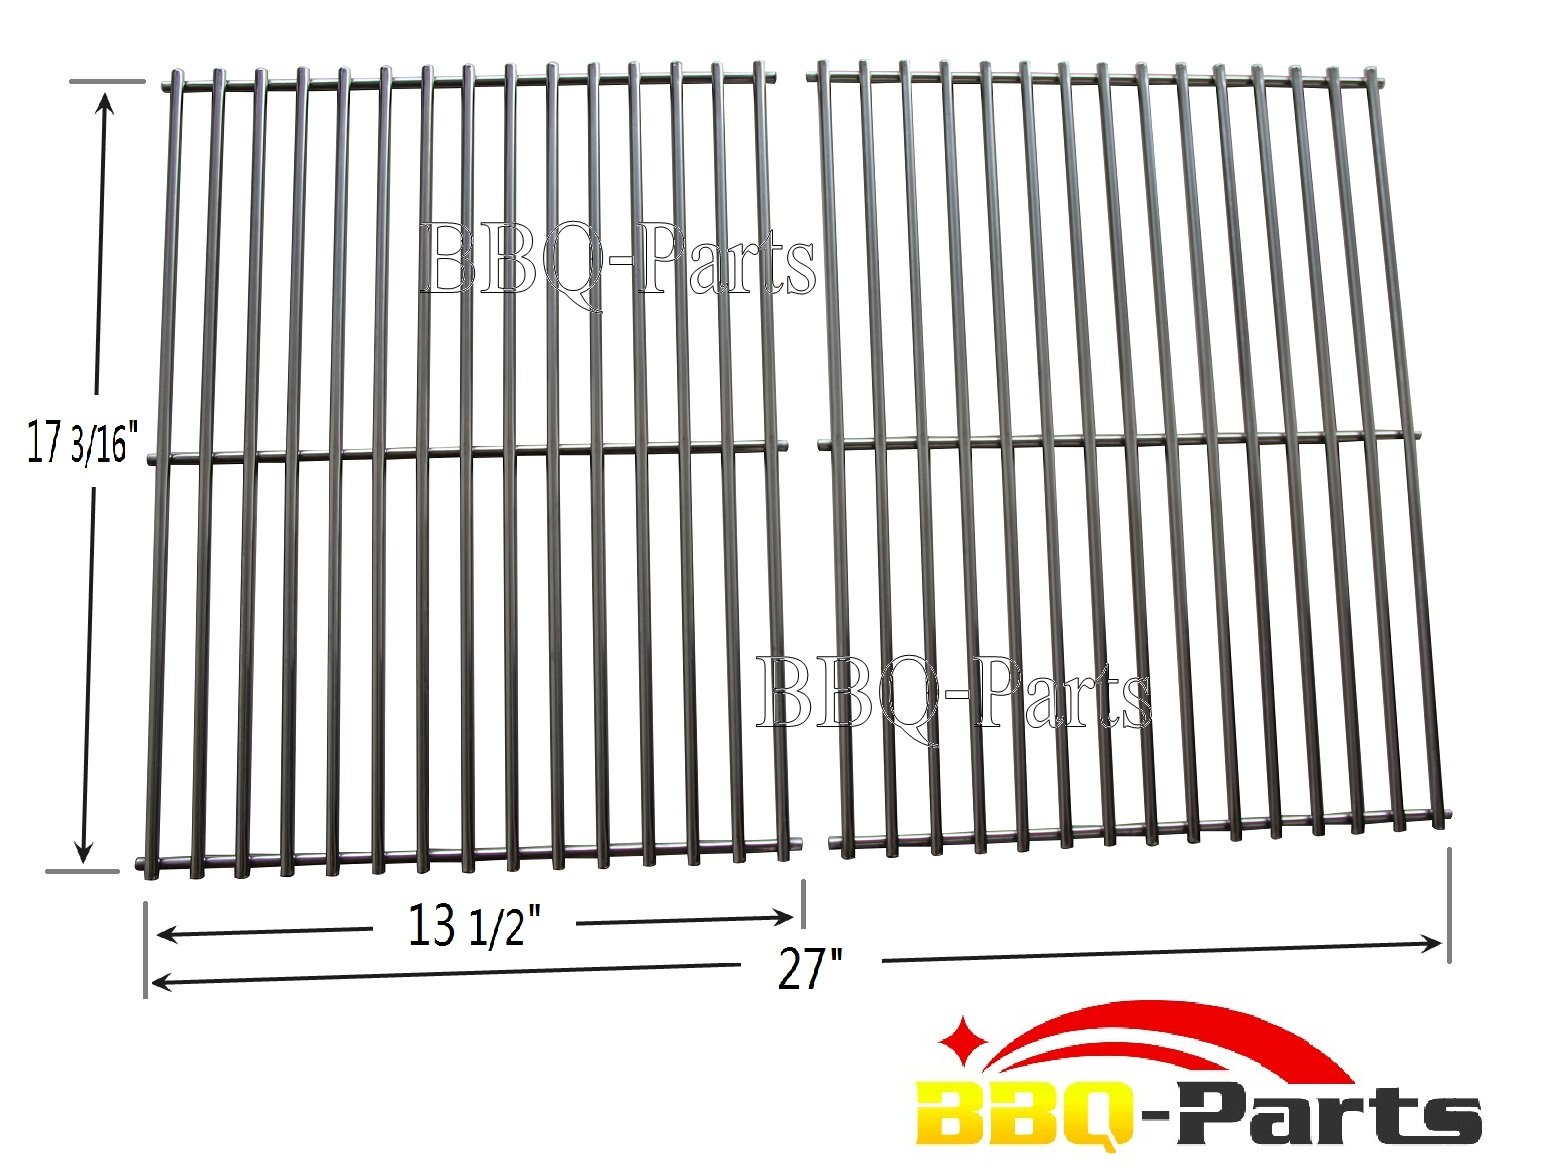 Bbq Parts Sci812 Stainless Steel Rod Cooking Grid Cooking